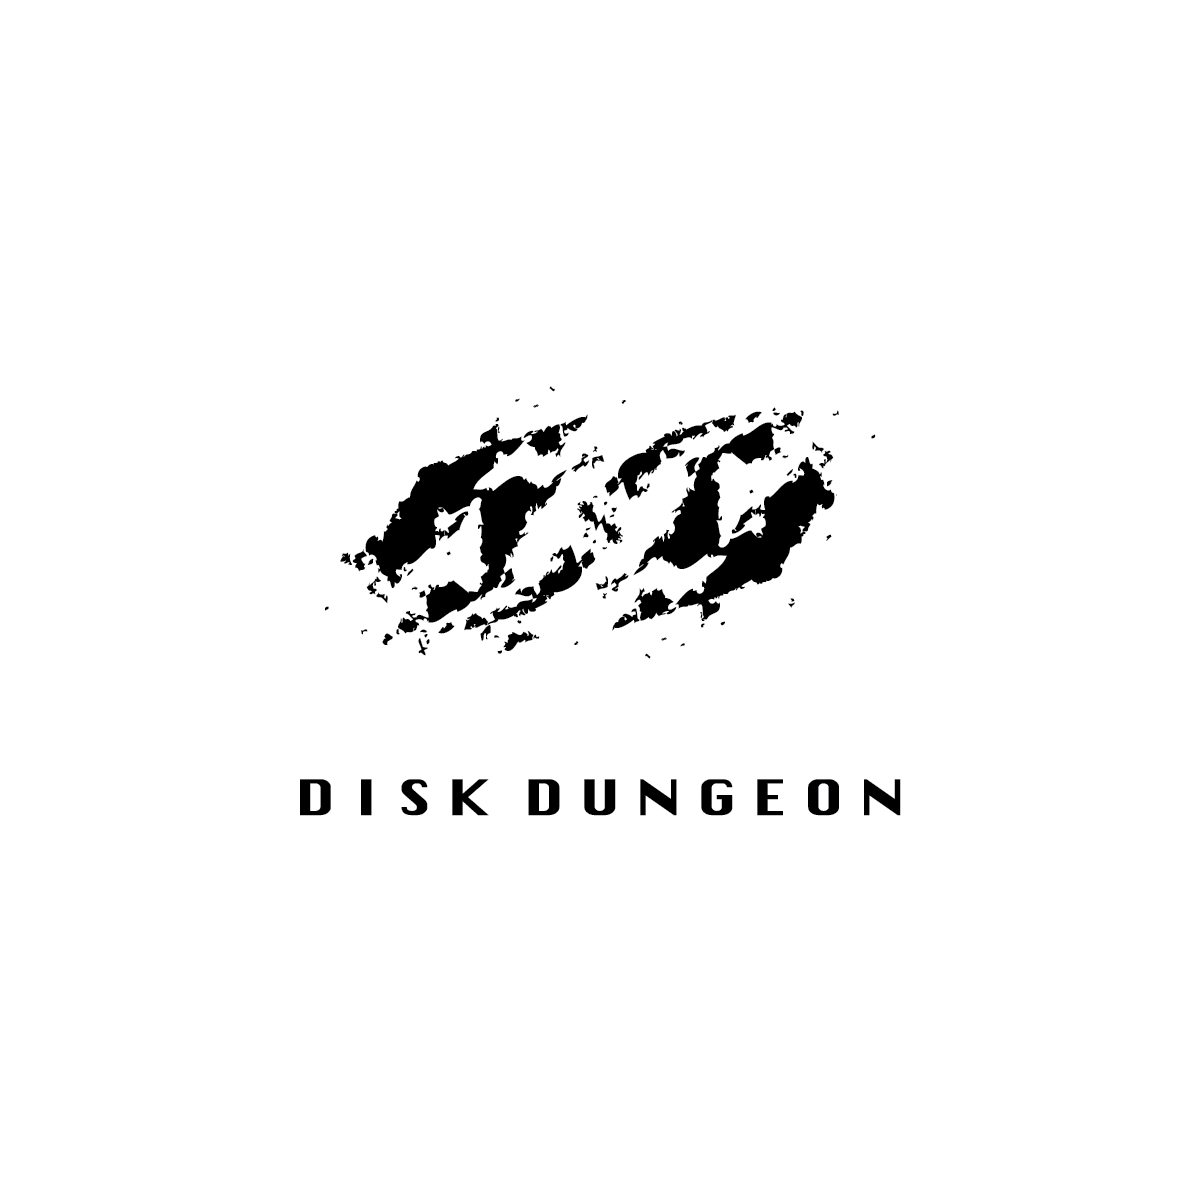 Disk Dungeon